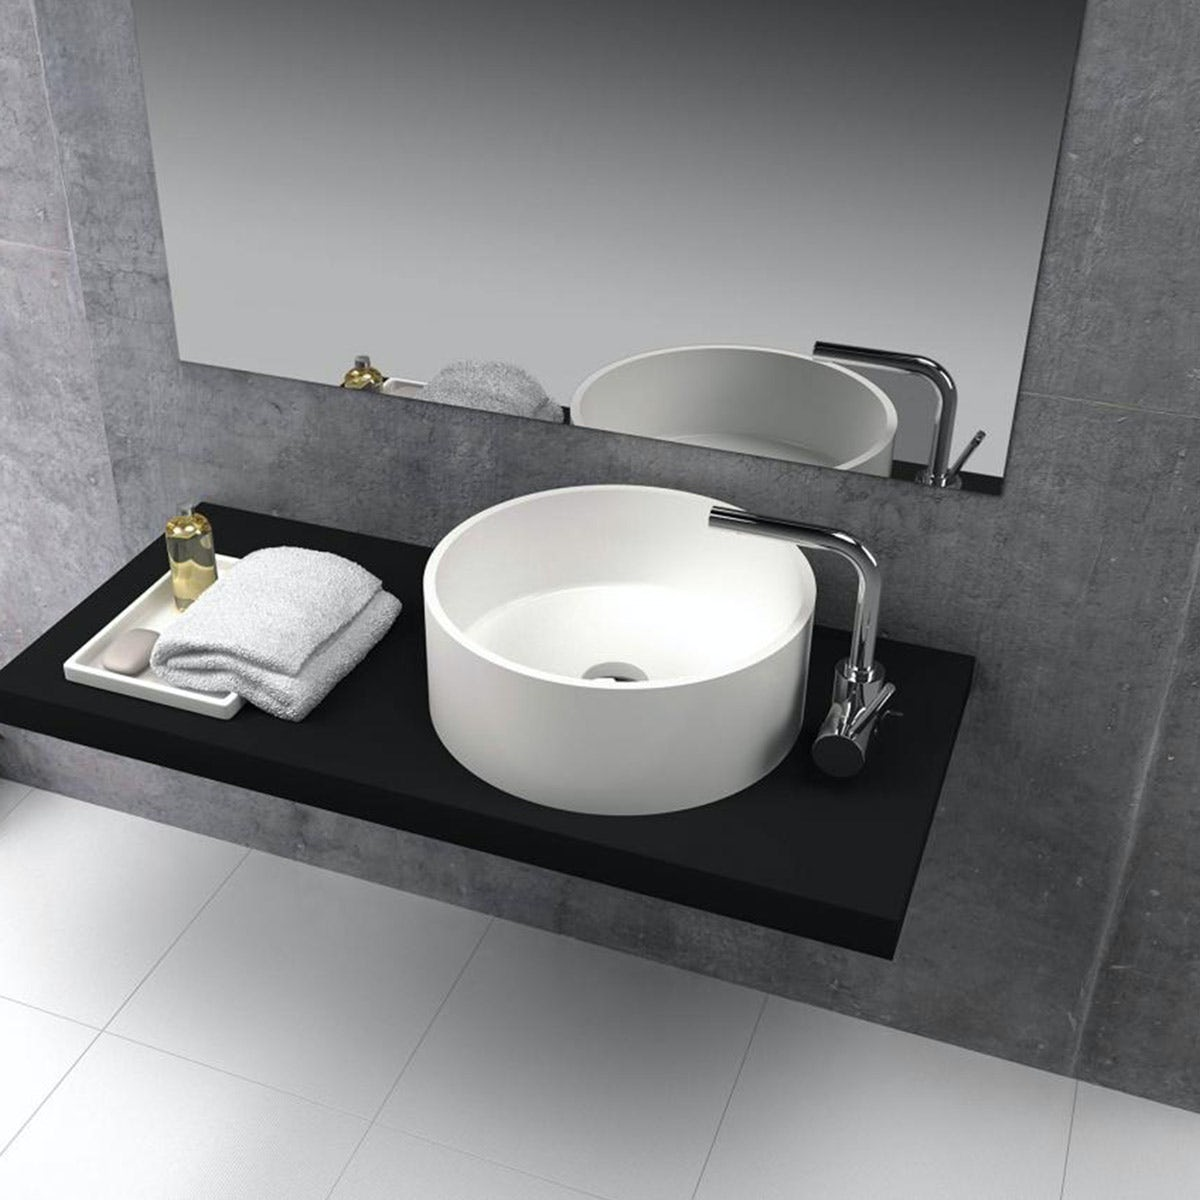 Mode Goda solid surface stone resin round countertop basin 400mm with waste